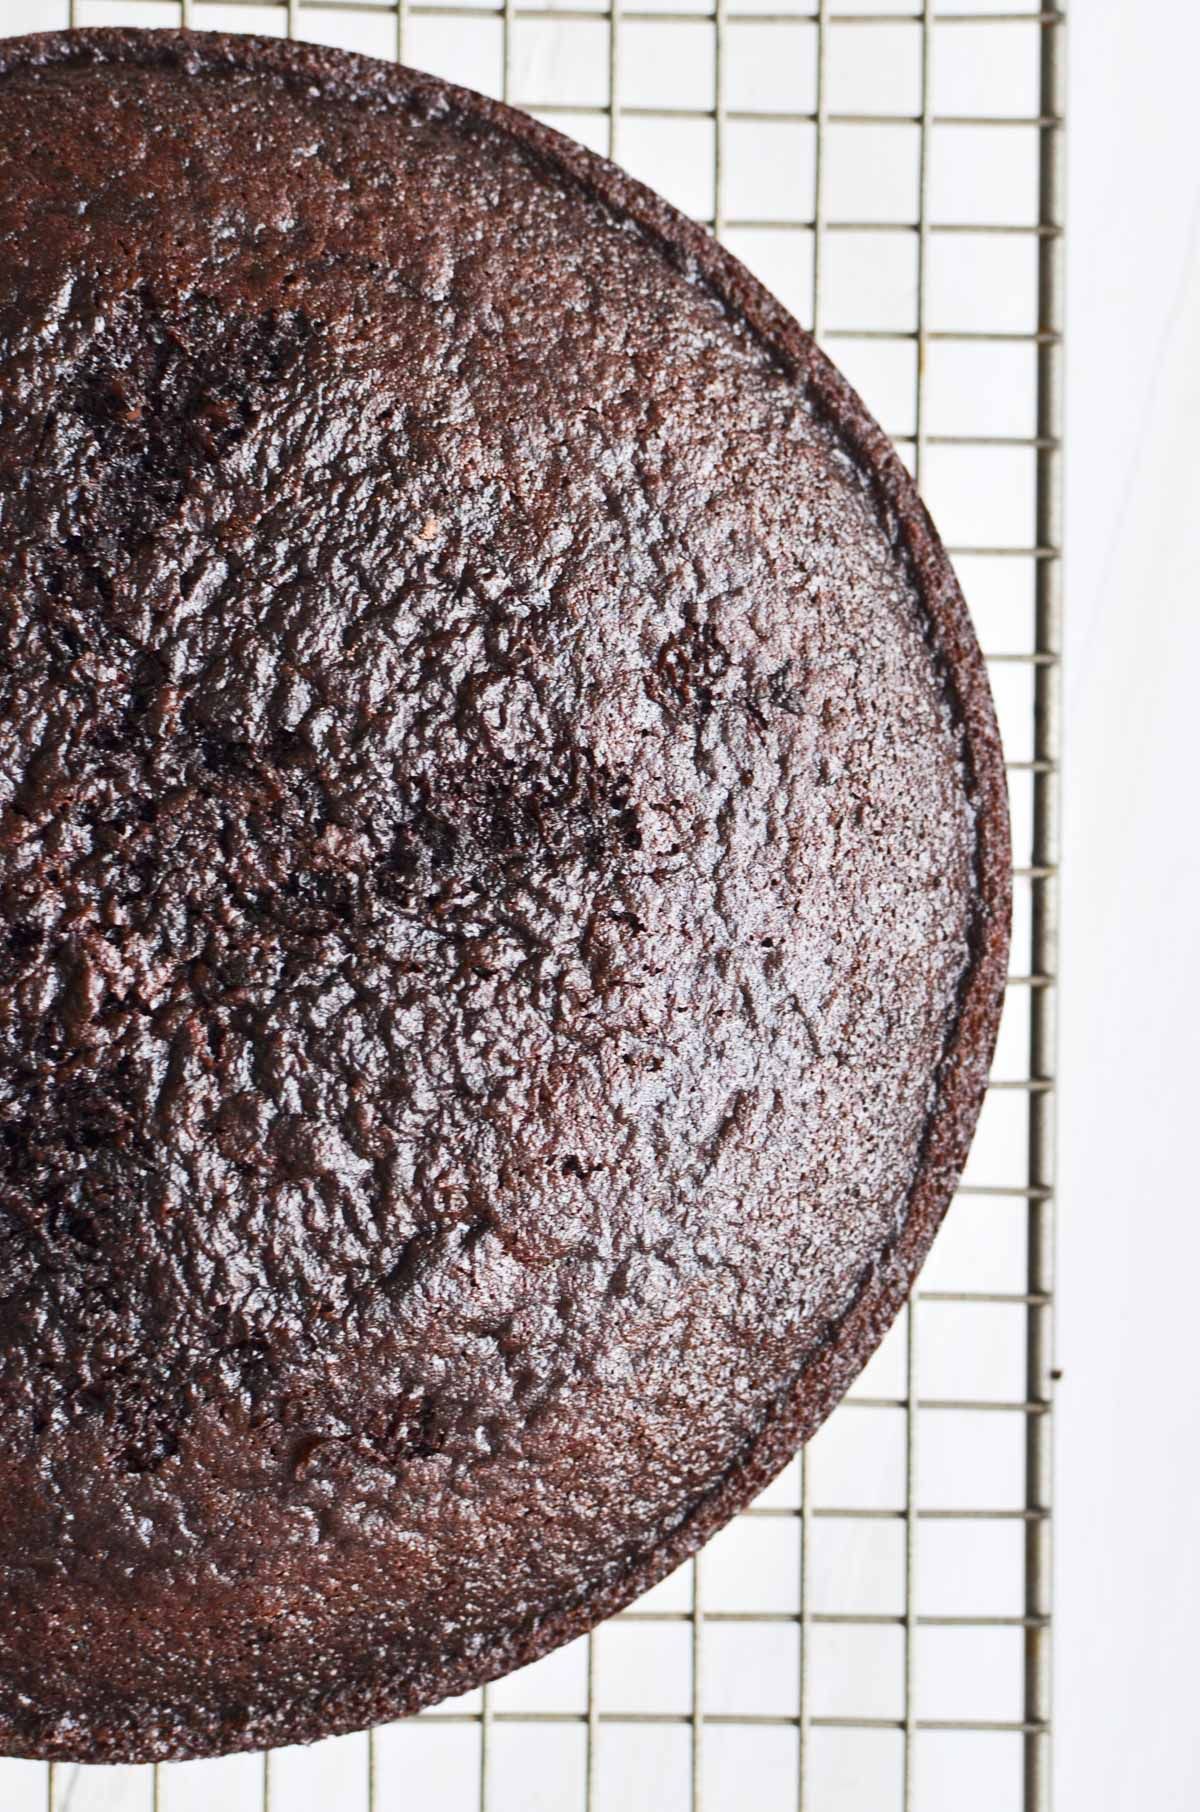 Ina Garten's Chocolate Cake cooling on a rack